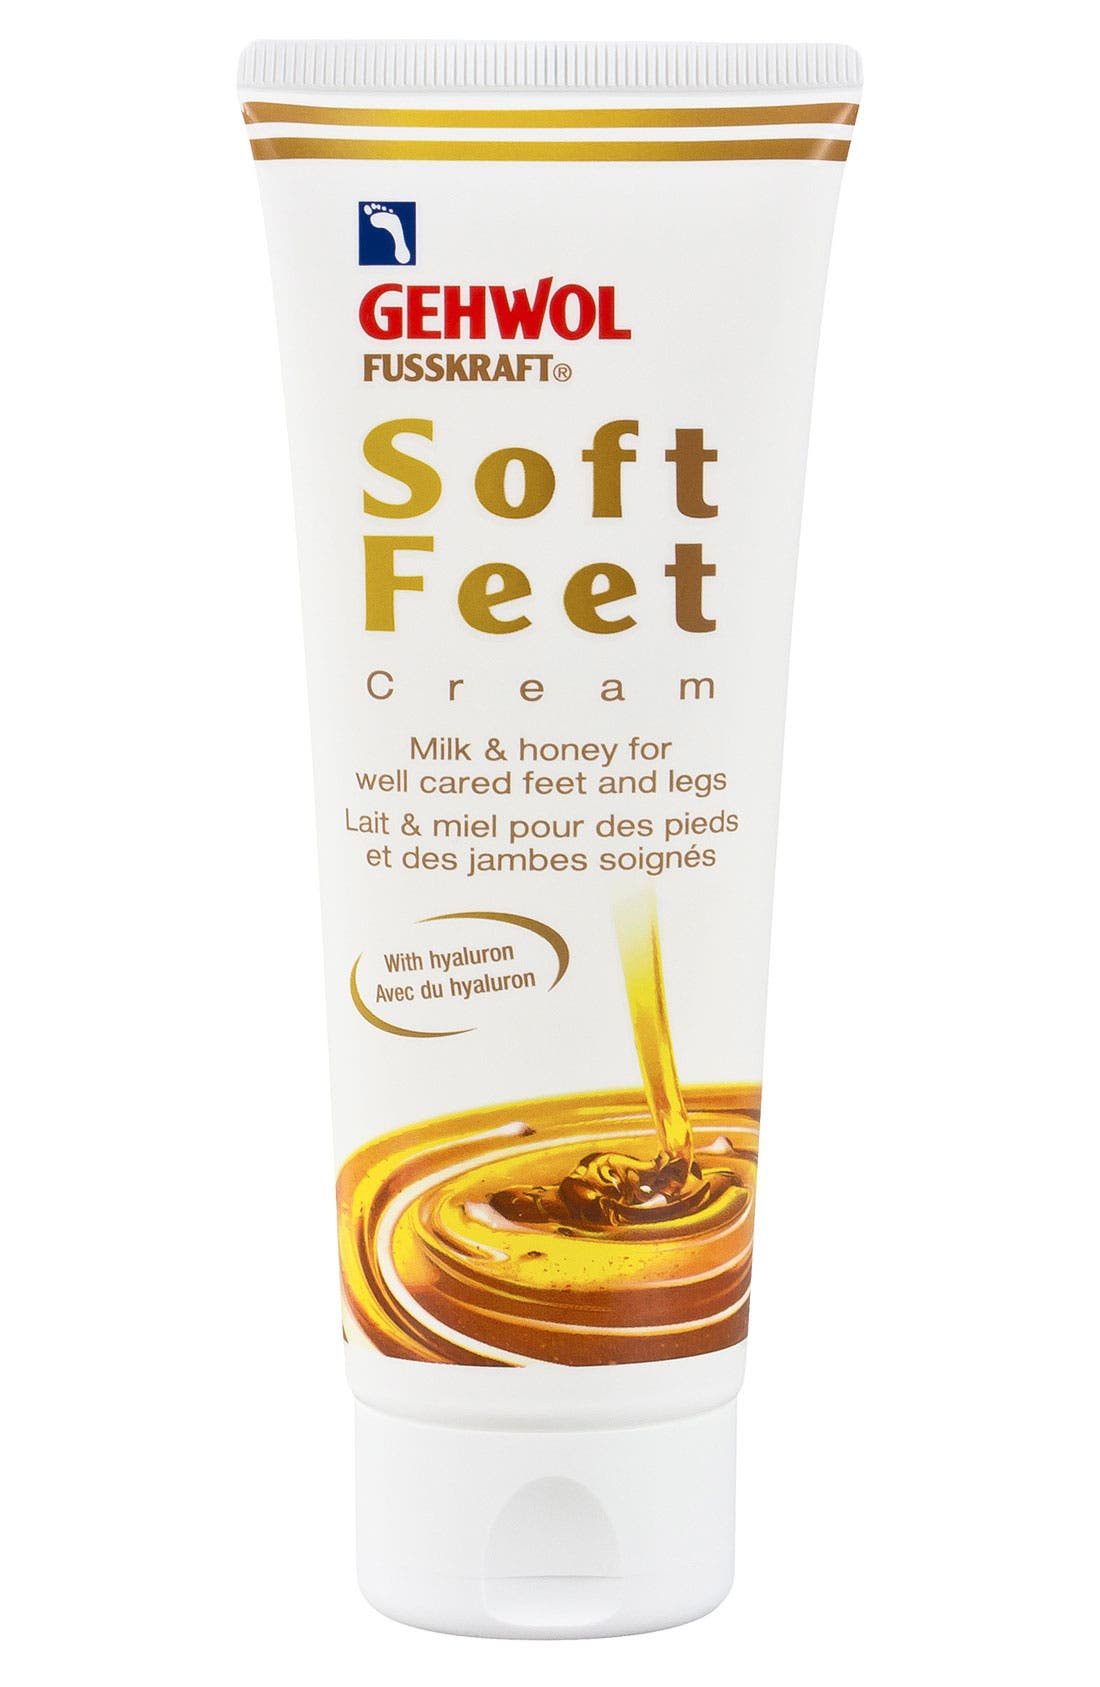 GEHWOL® Foot Care 'Soft Feet' Cream